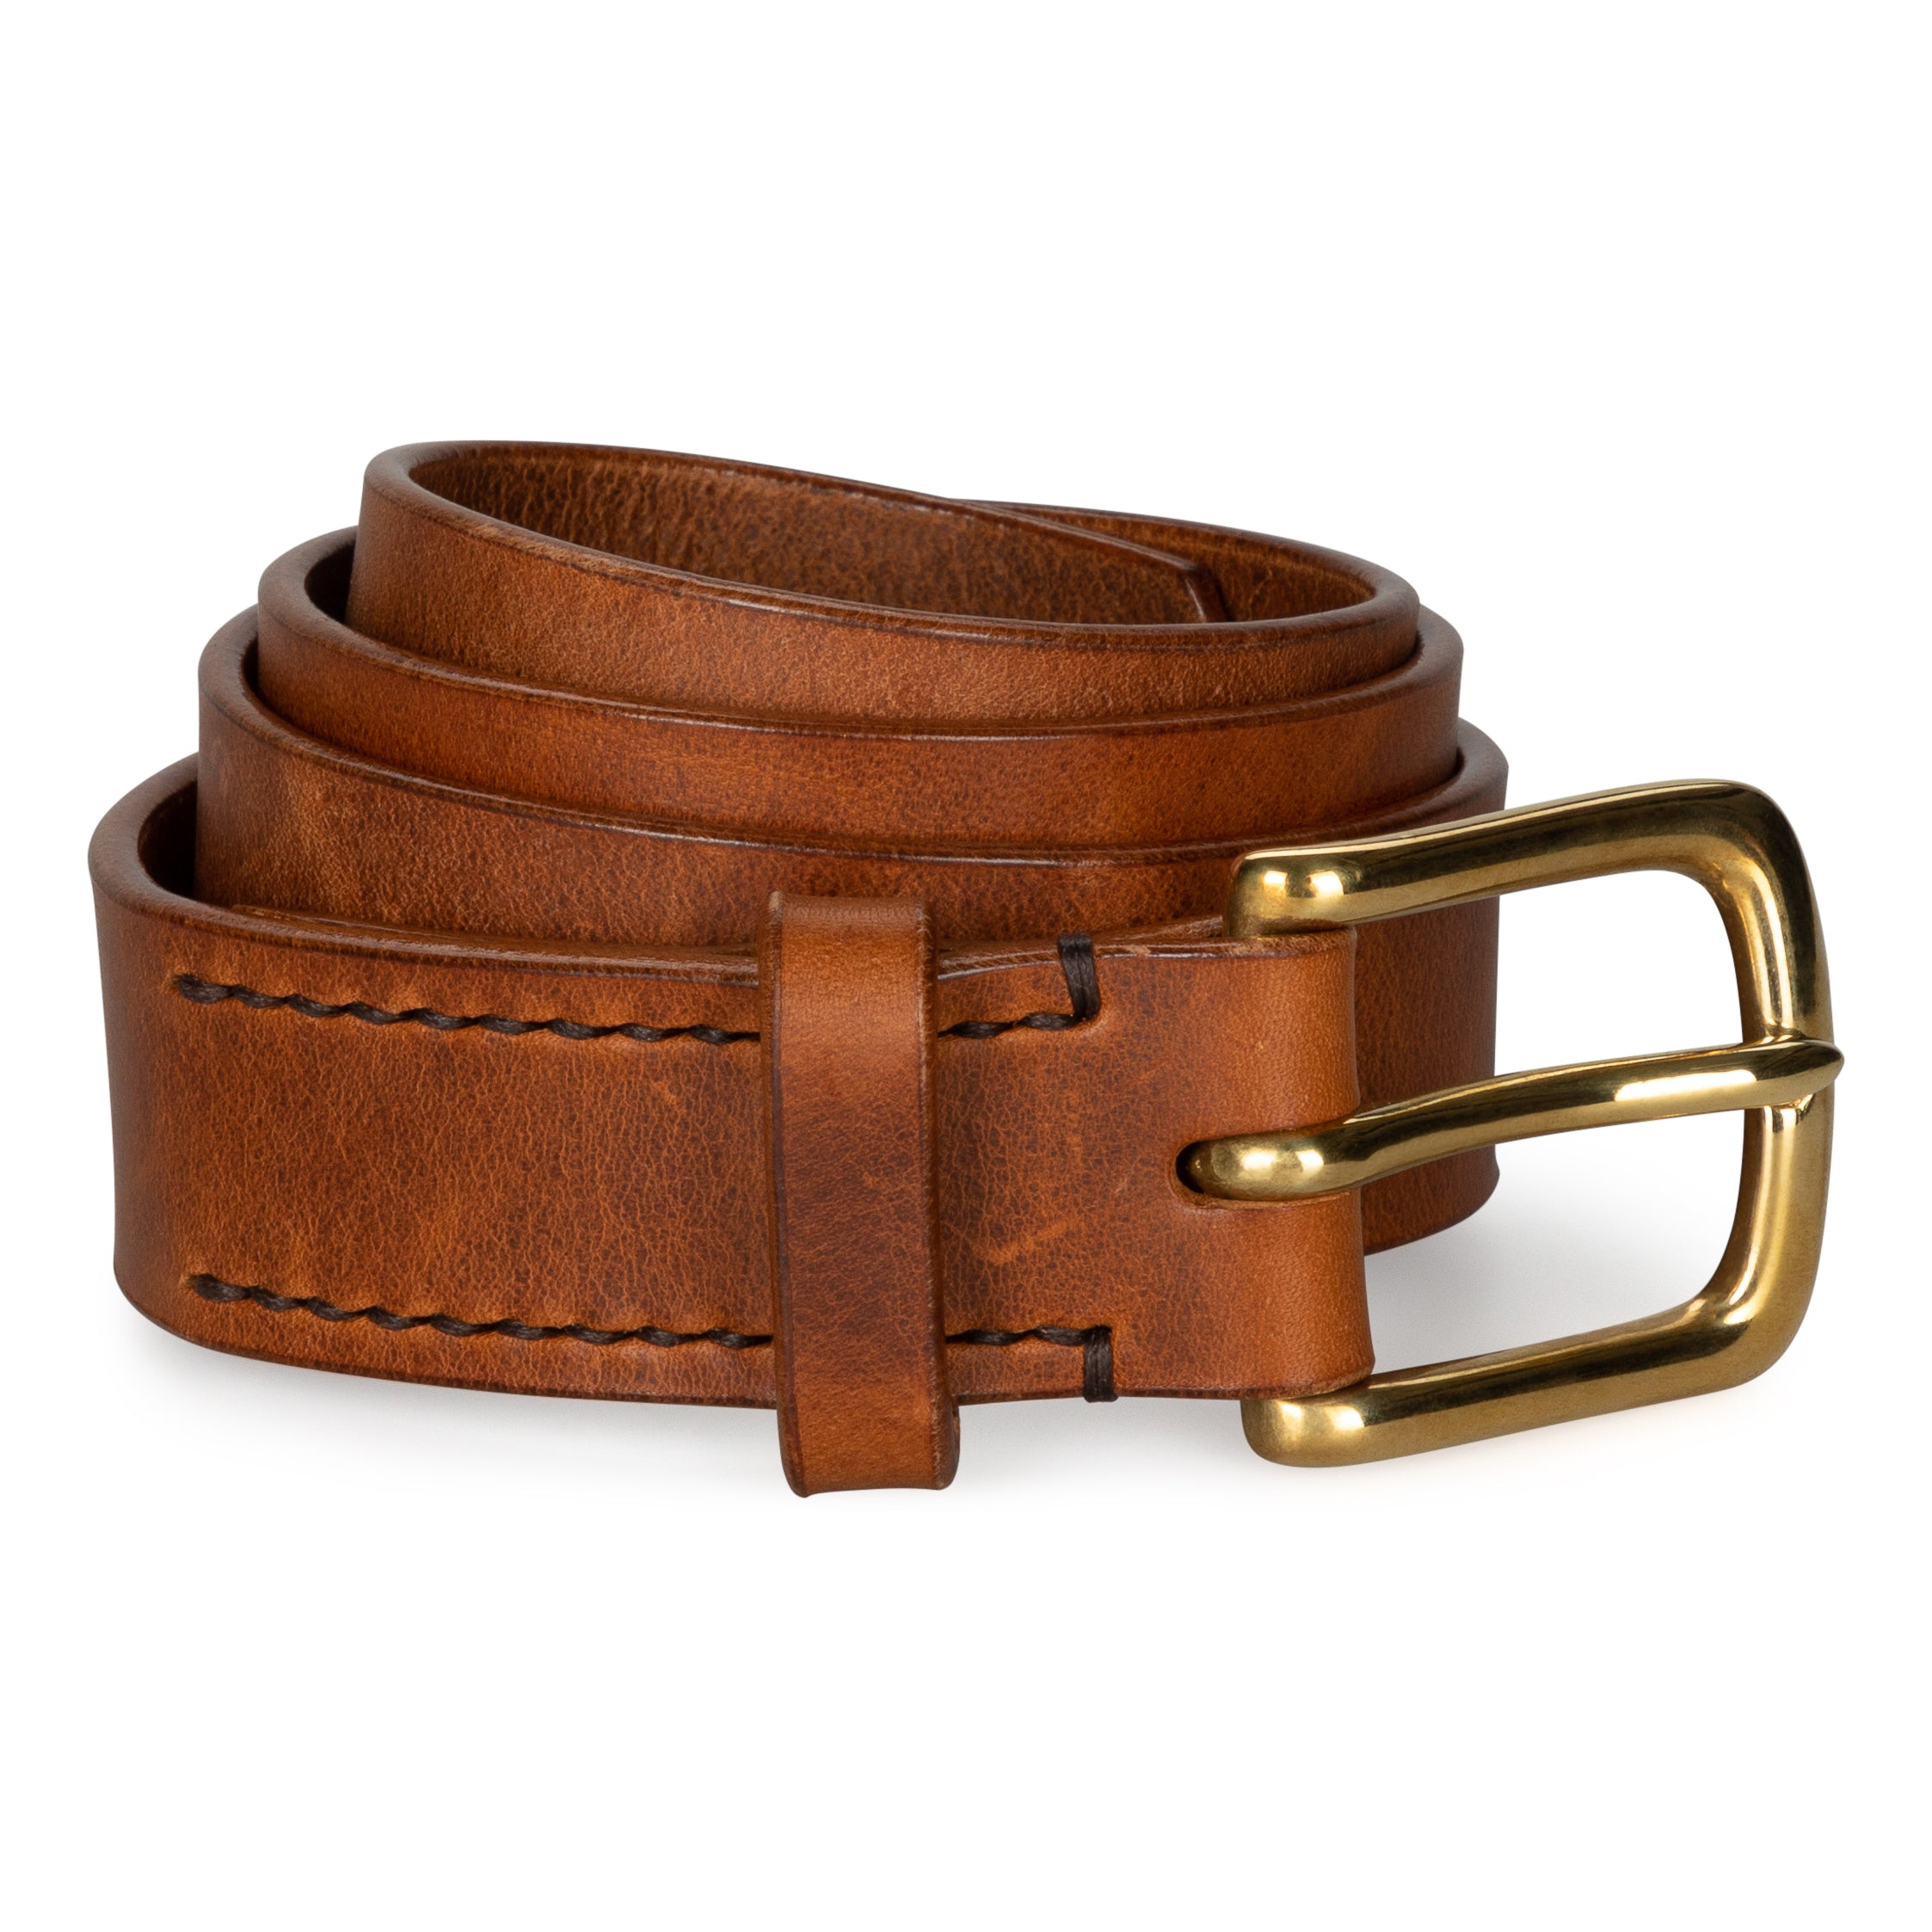 Chestnut Leather Belt